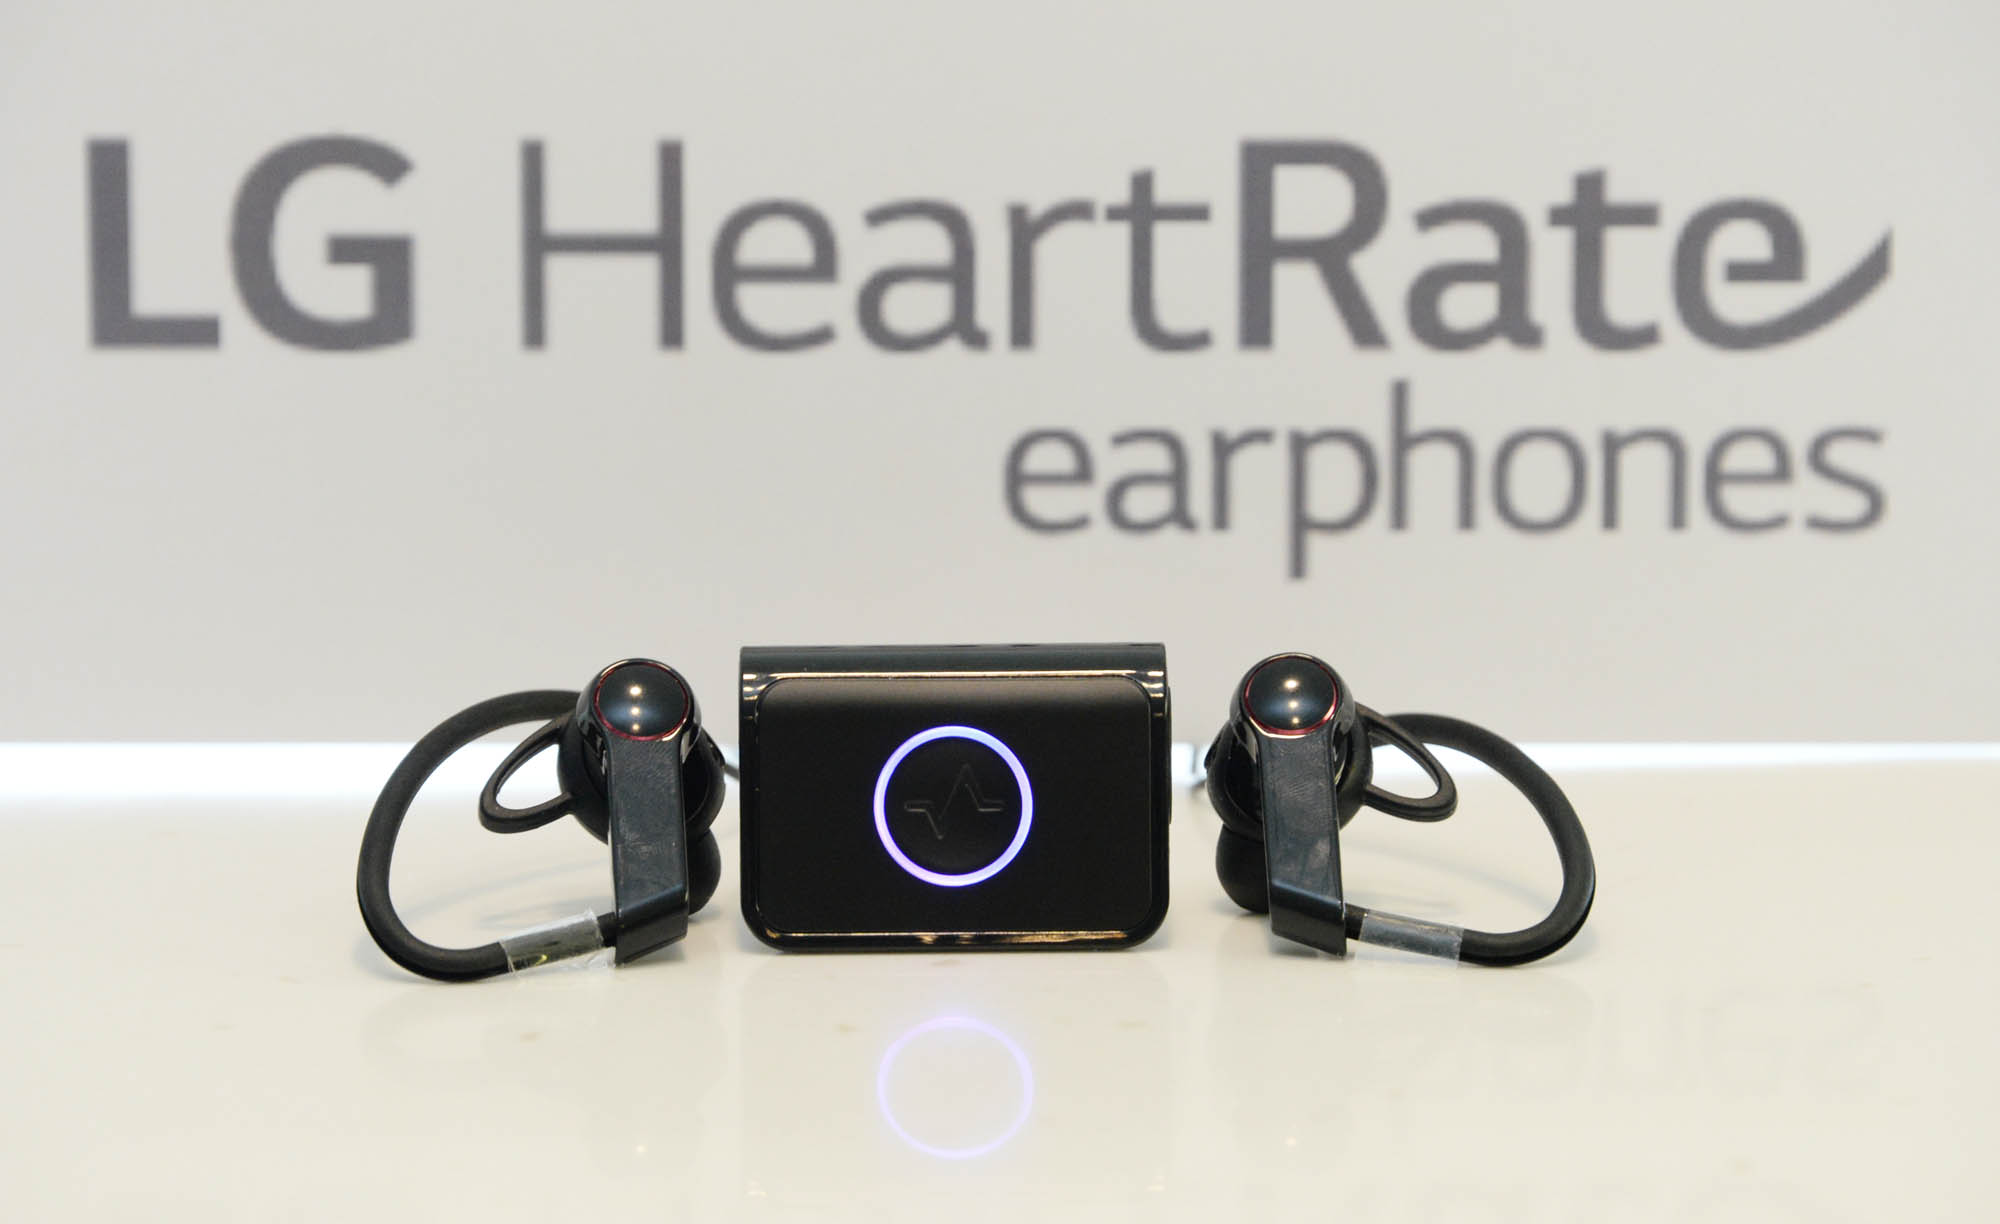 LG Heart Rate Earphones